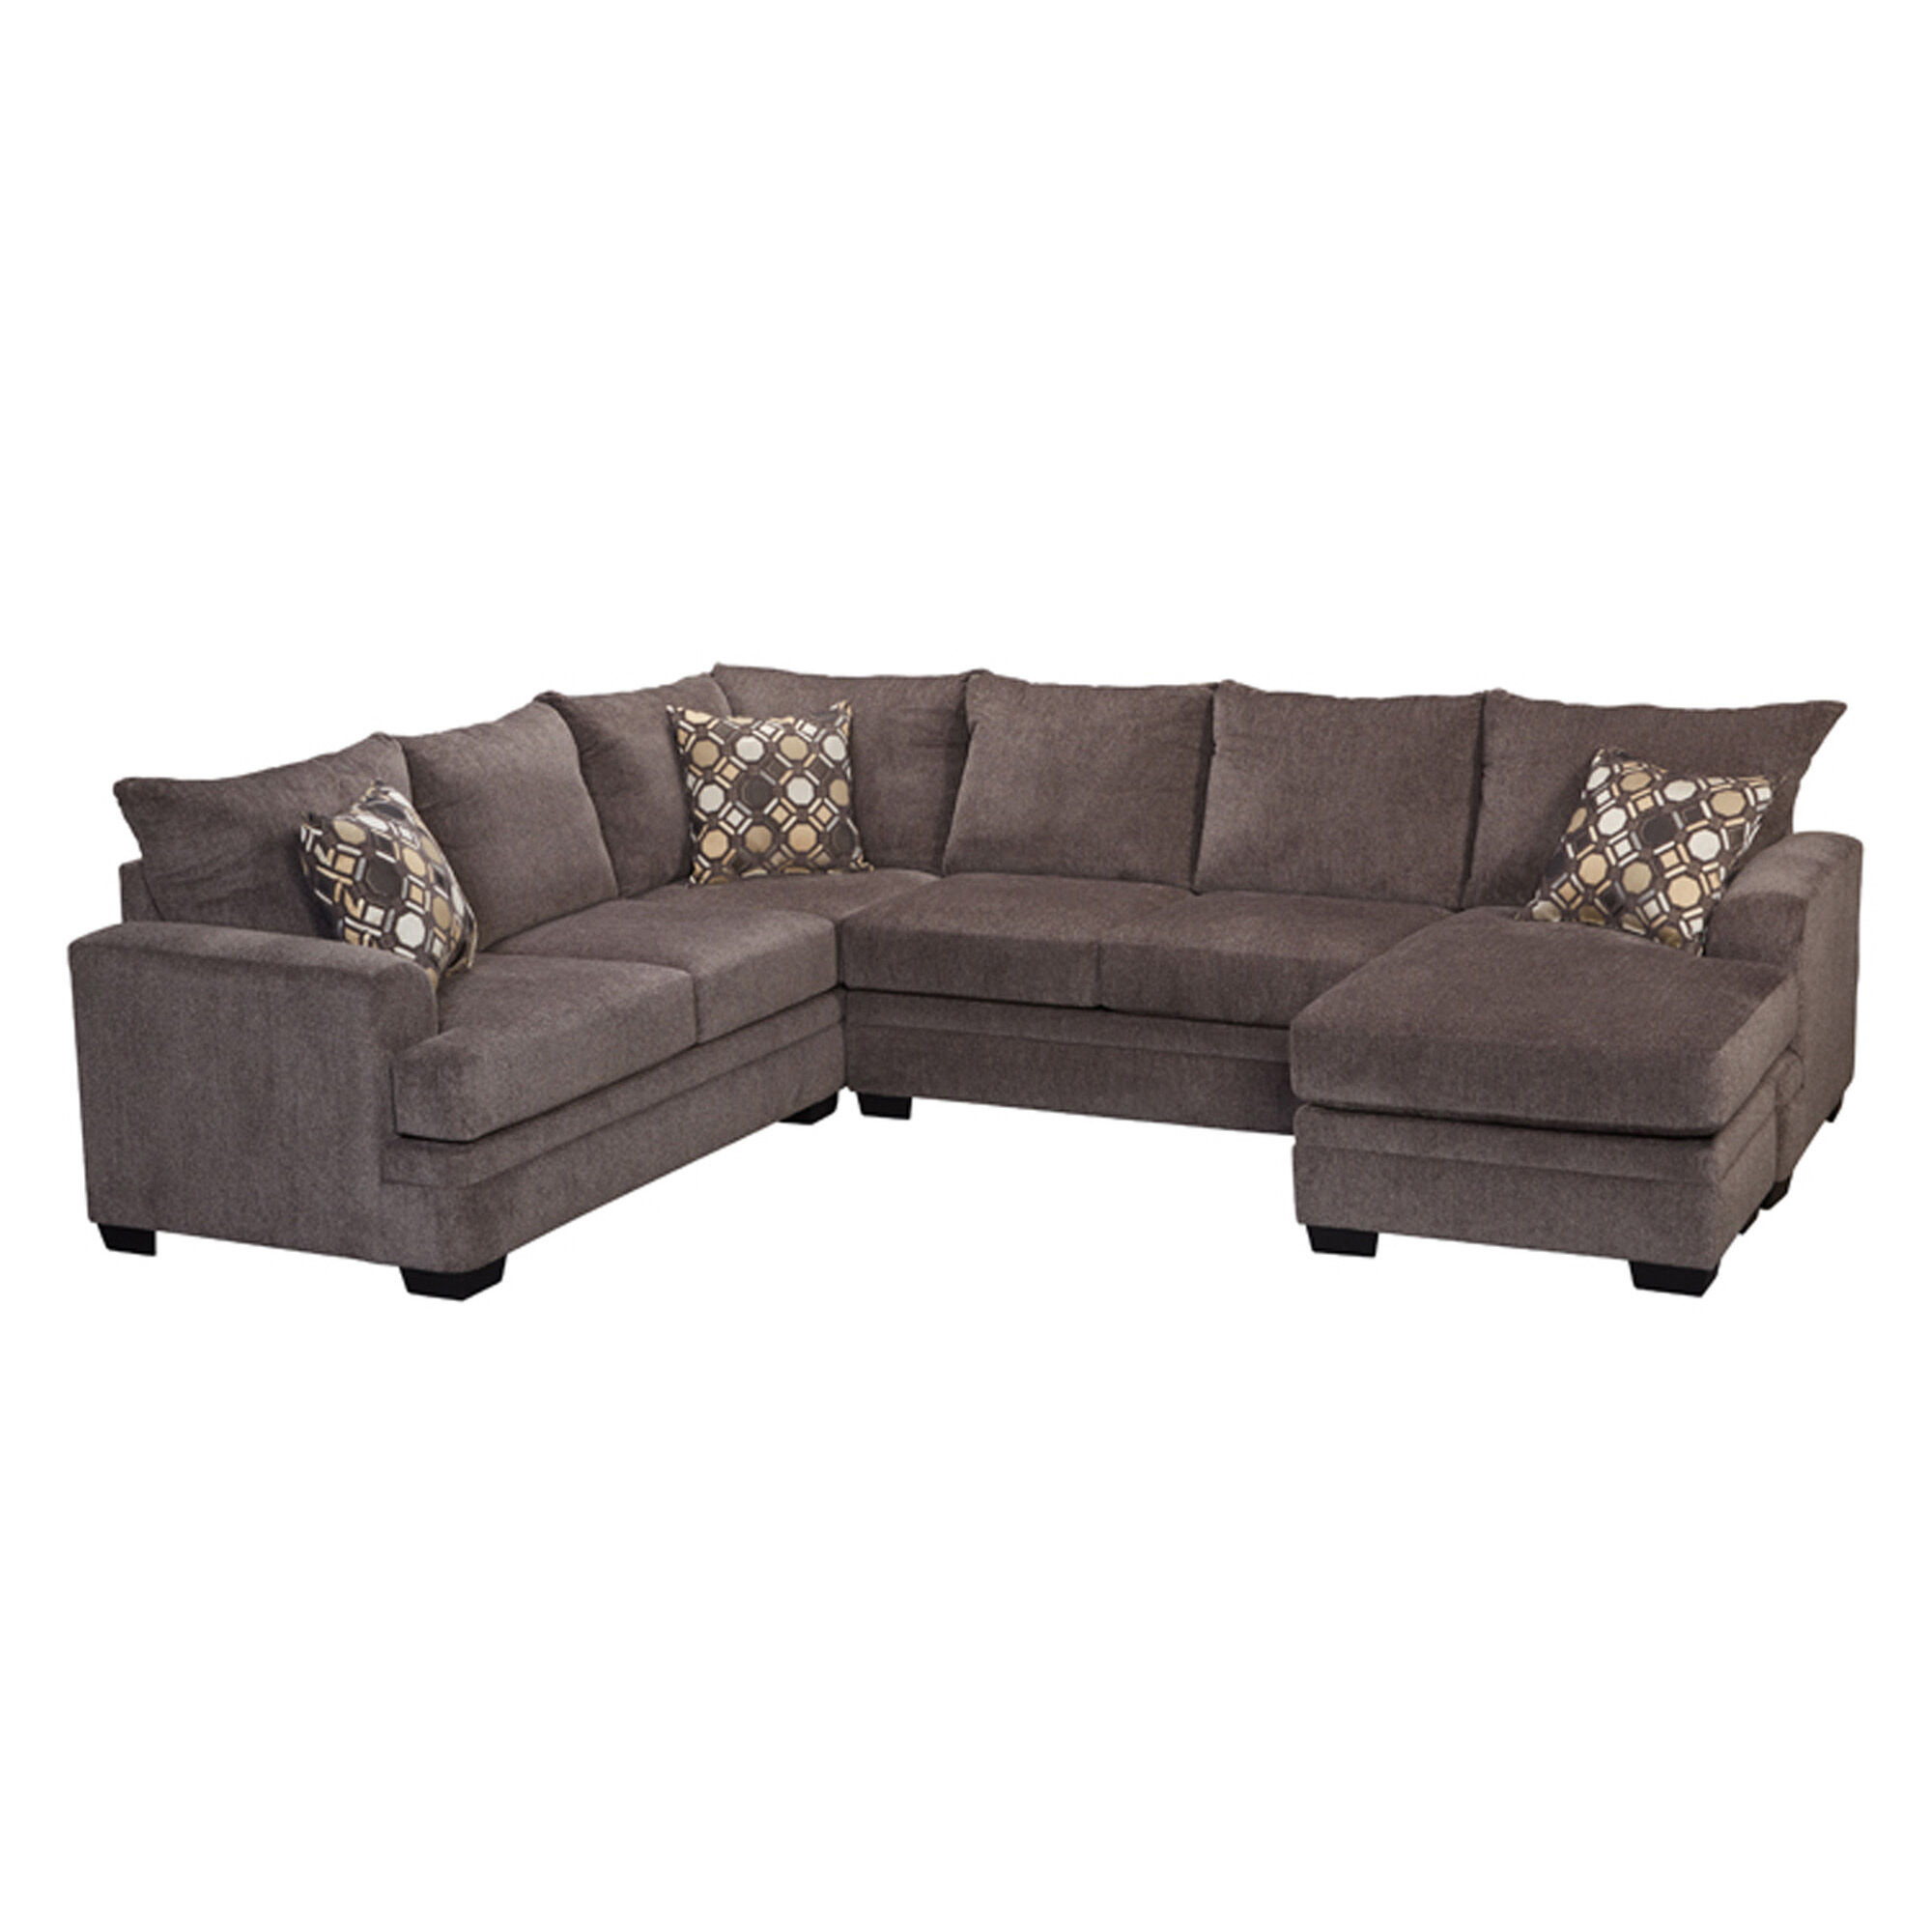 sectional sofas nyc showroom flexsteel brown leather reclining sofa rent to own and couches aaron s 2 piece kimberly living room collection